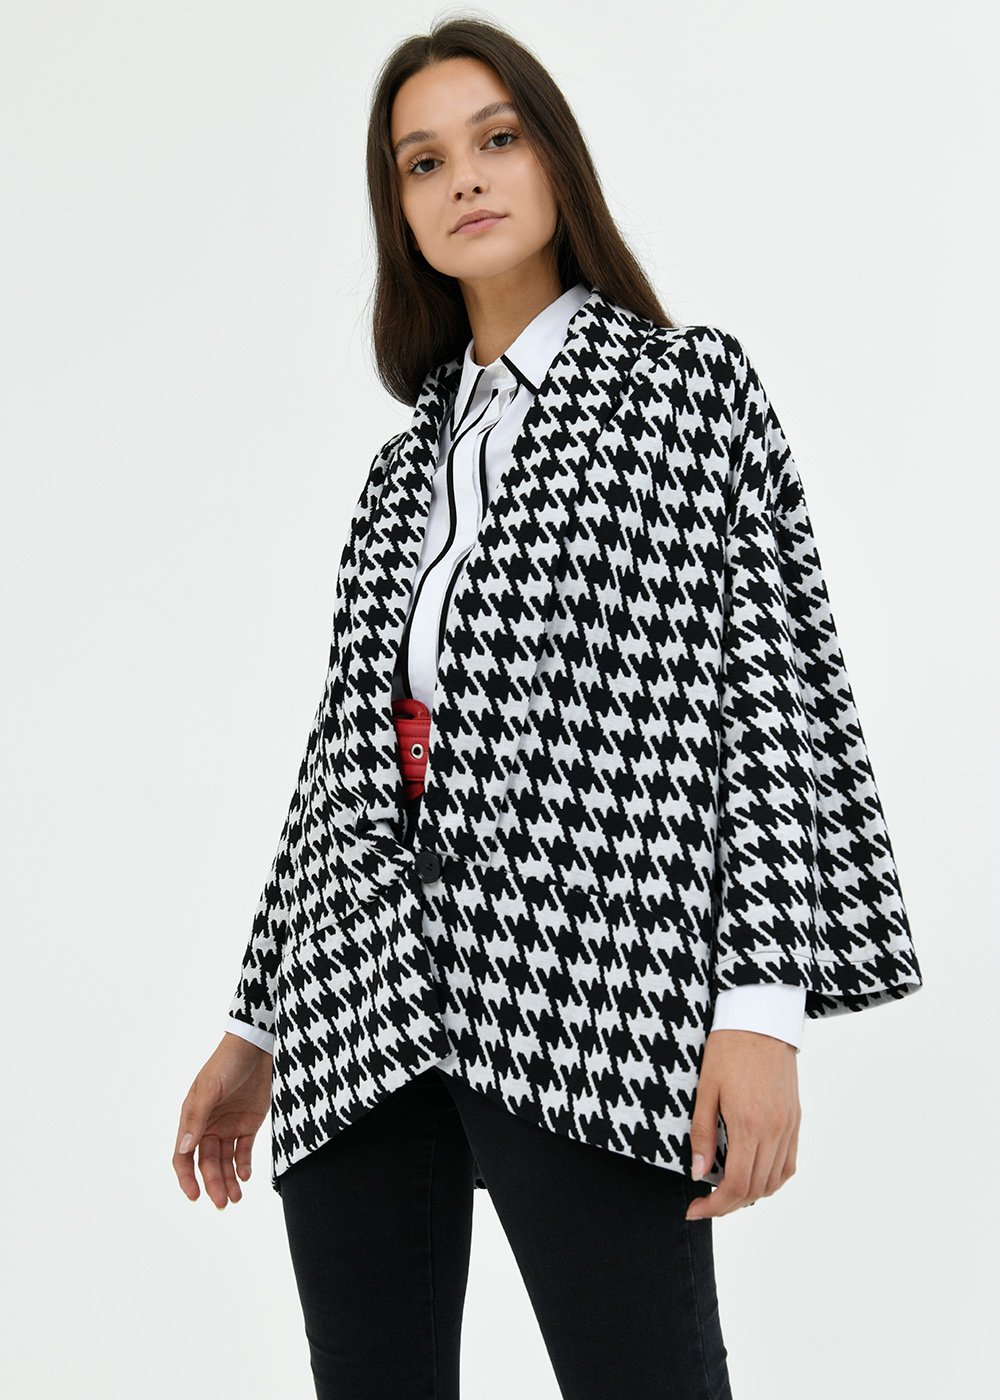 Clio black and white cardigan - White /  Black Fantasia - Woman